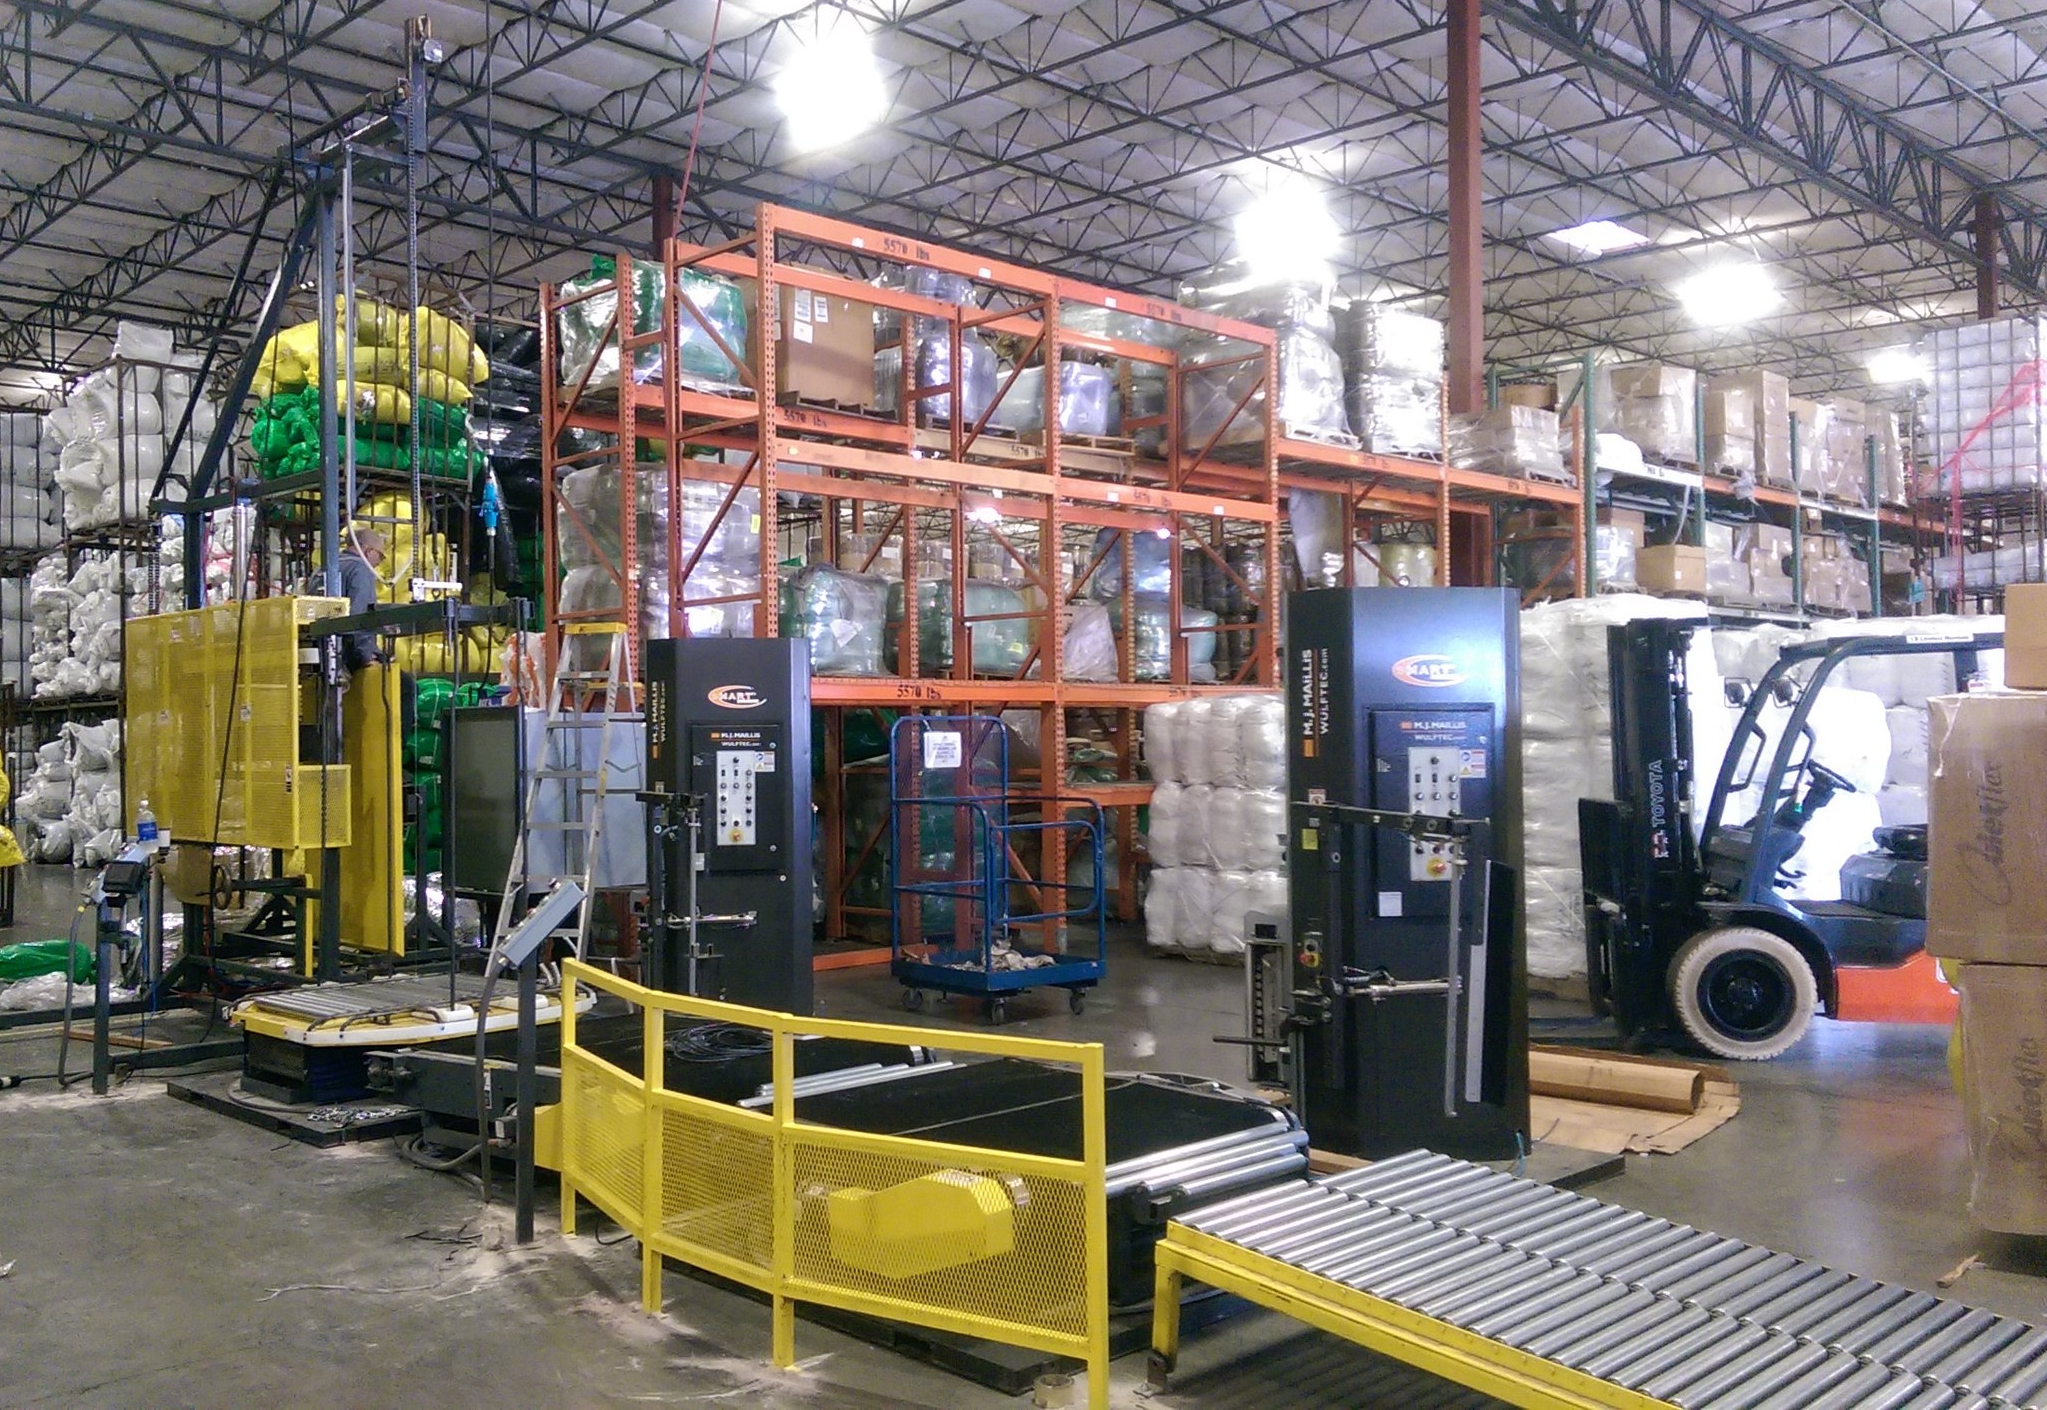 The Fastpack 200 series packaging equipment.